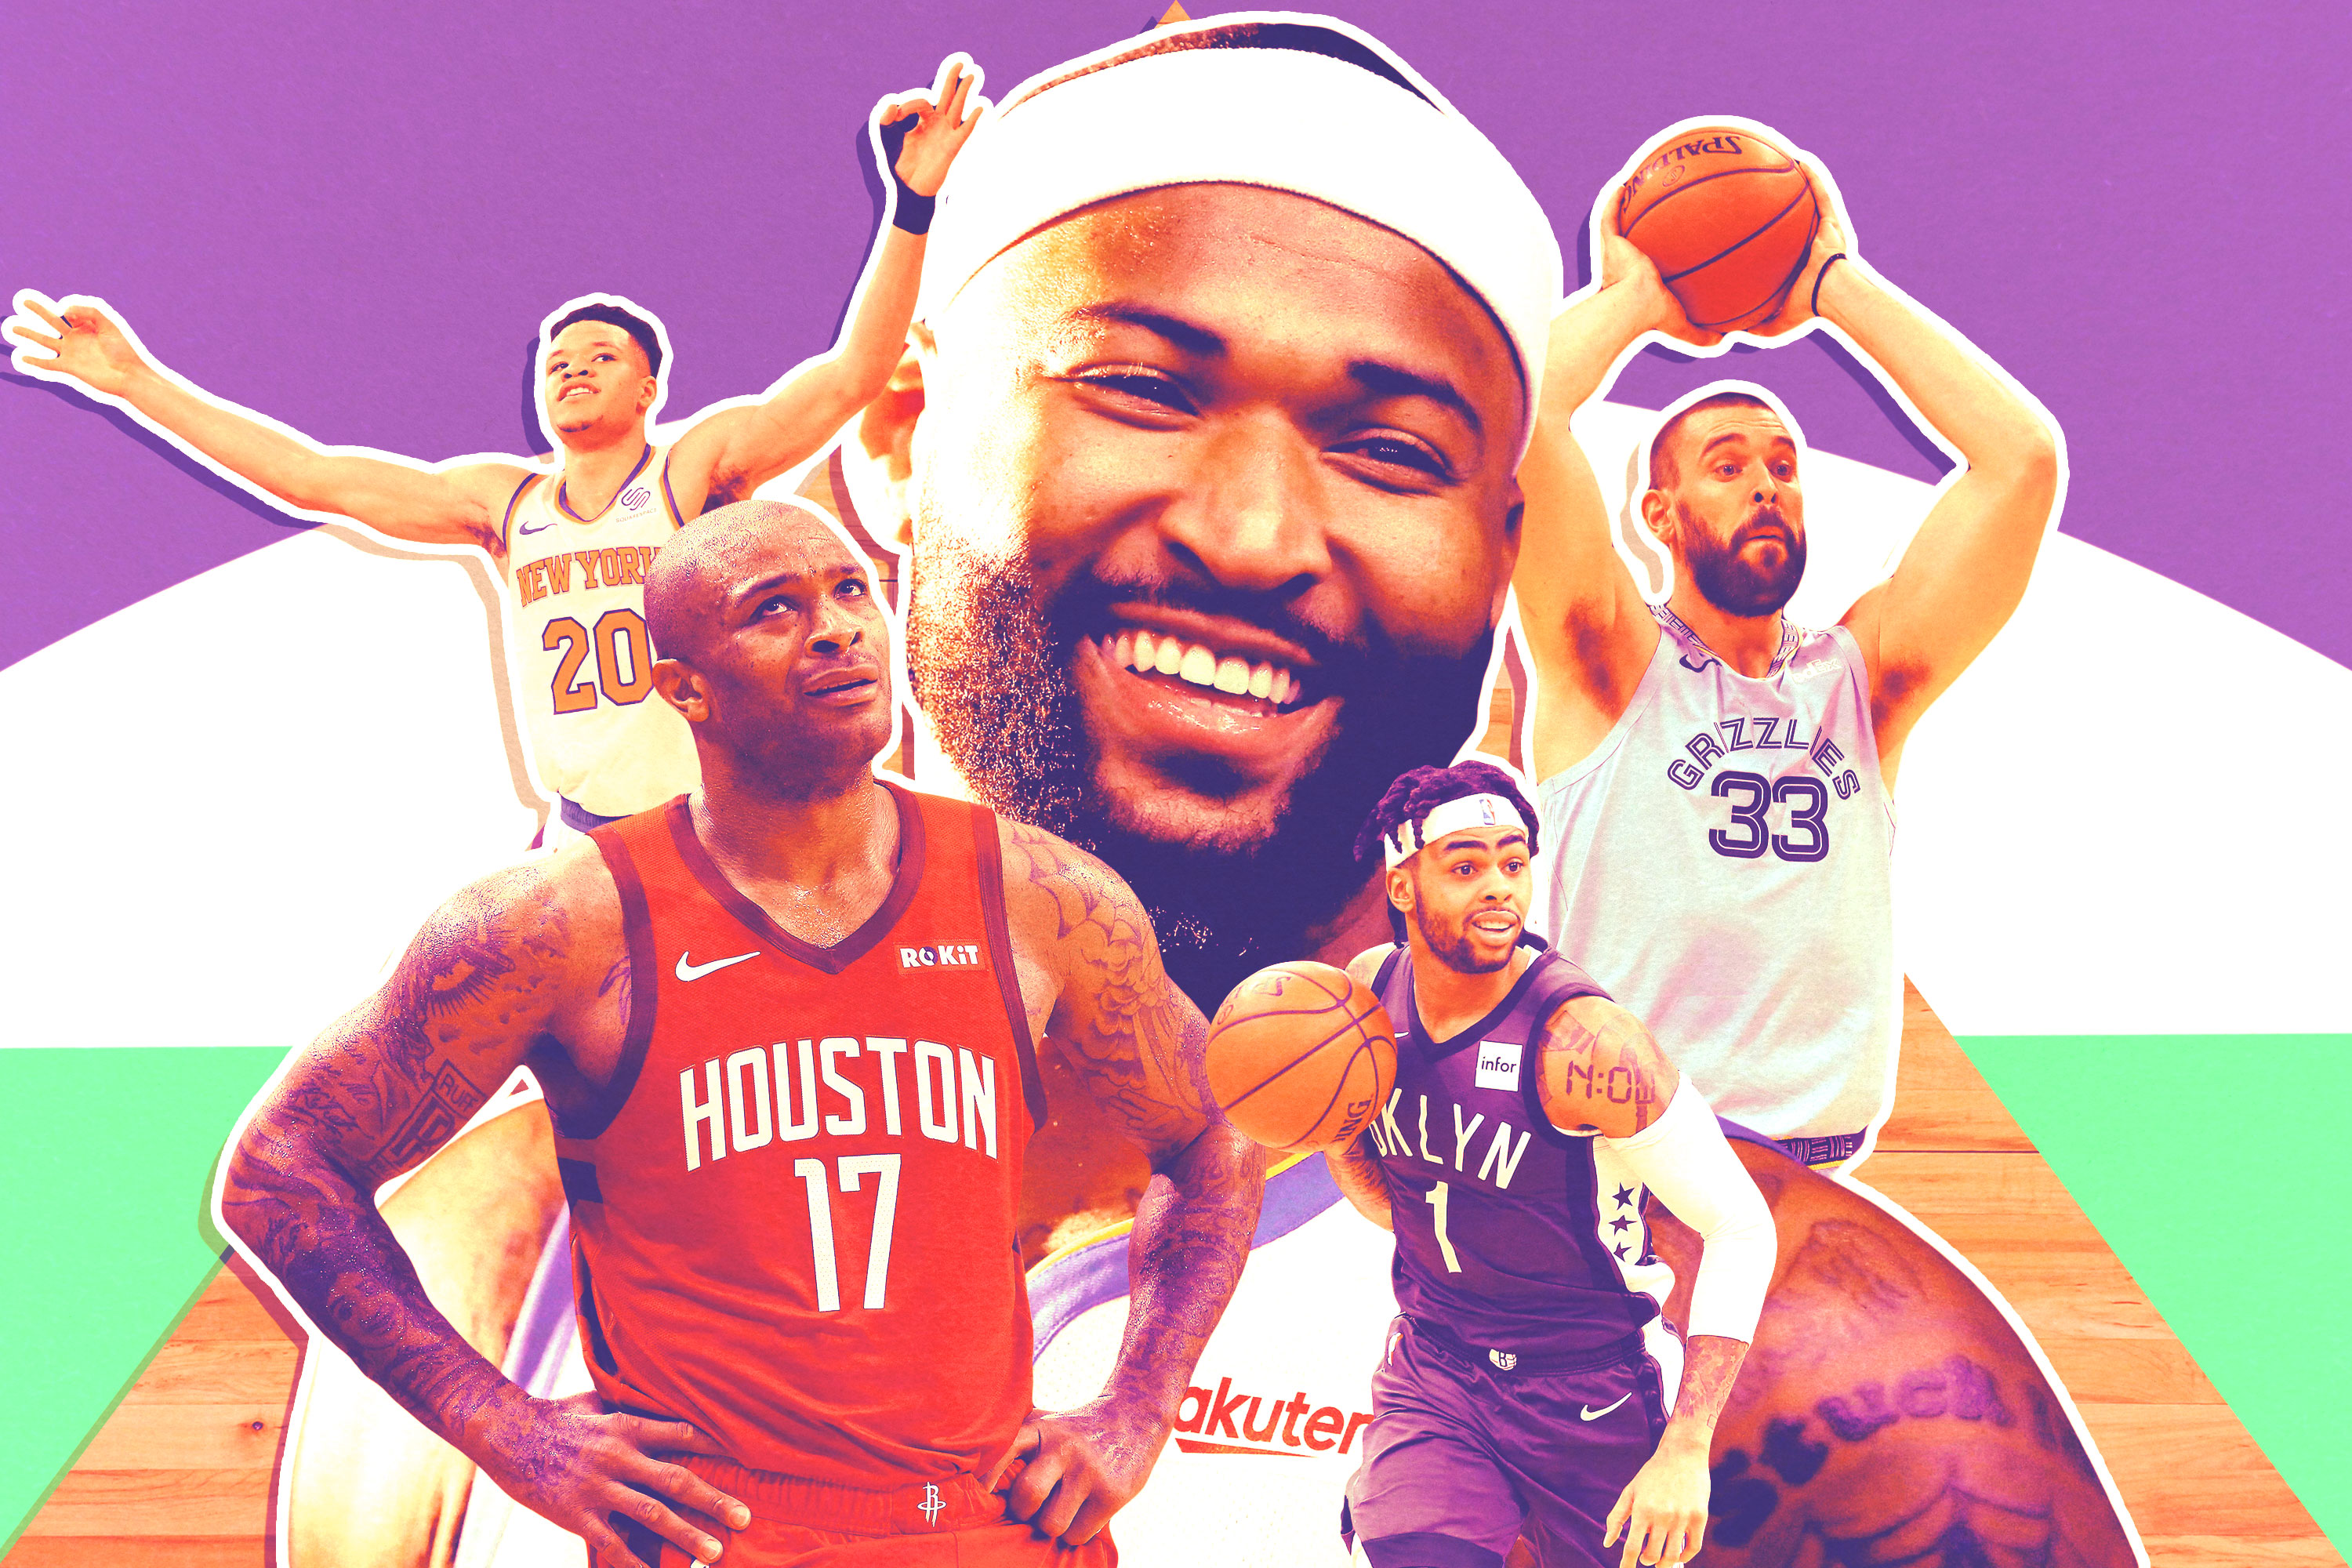 A collage of players from the Knicks, Warriors, Grizzlies, Rockets, and Nets